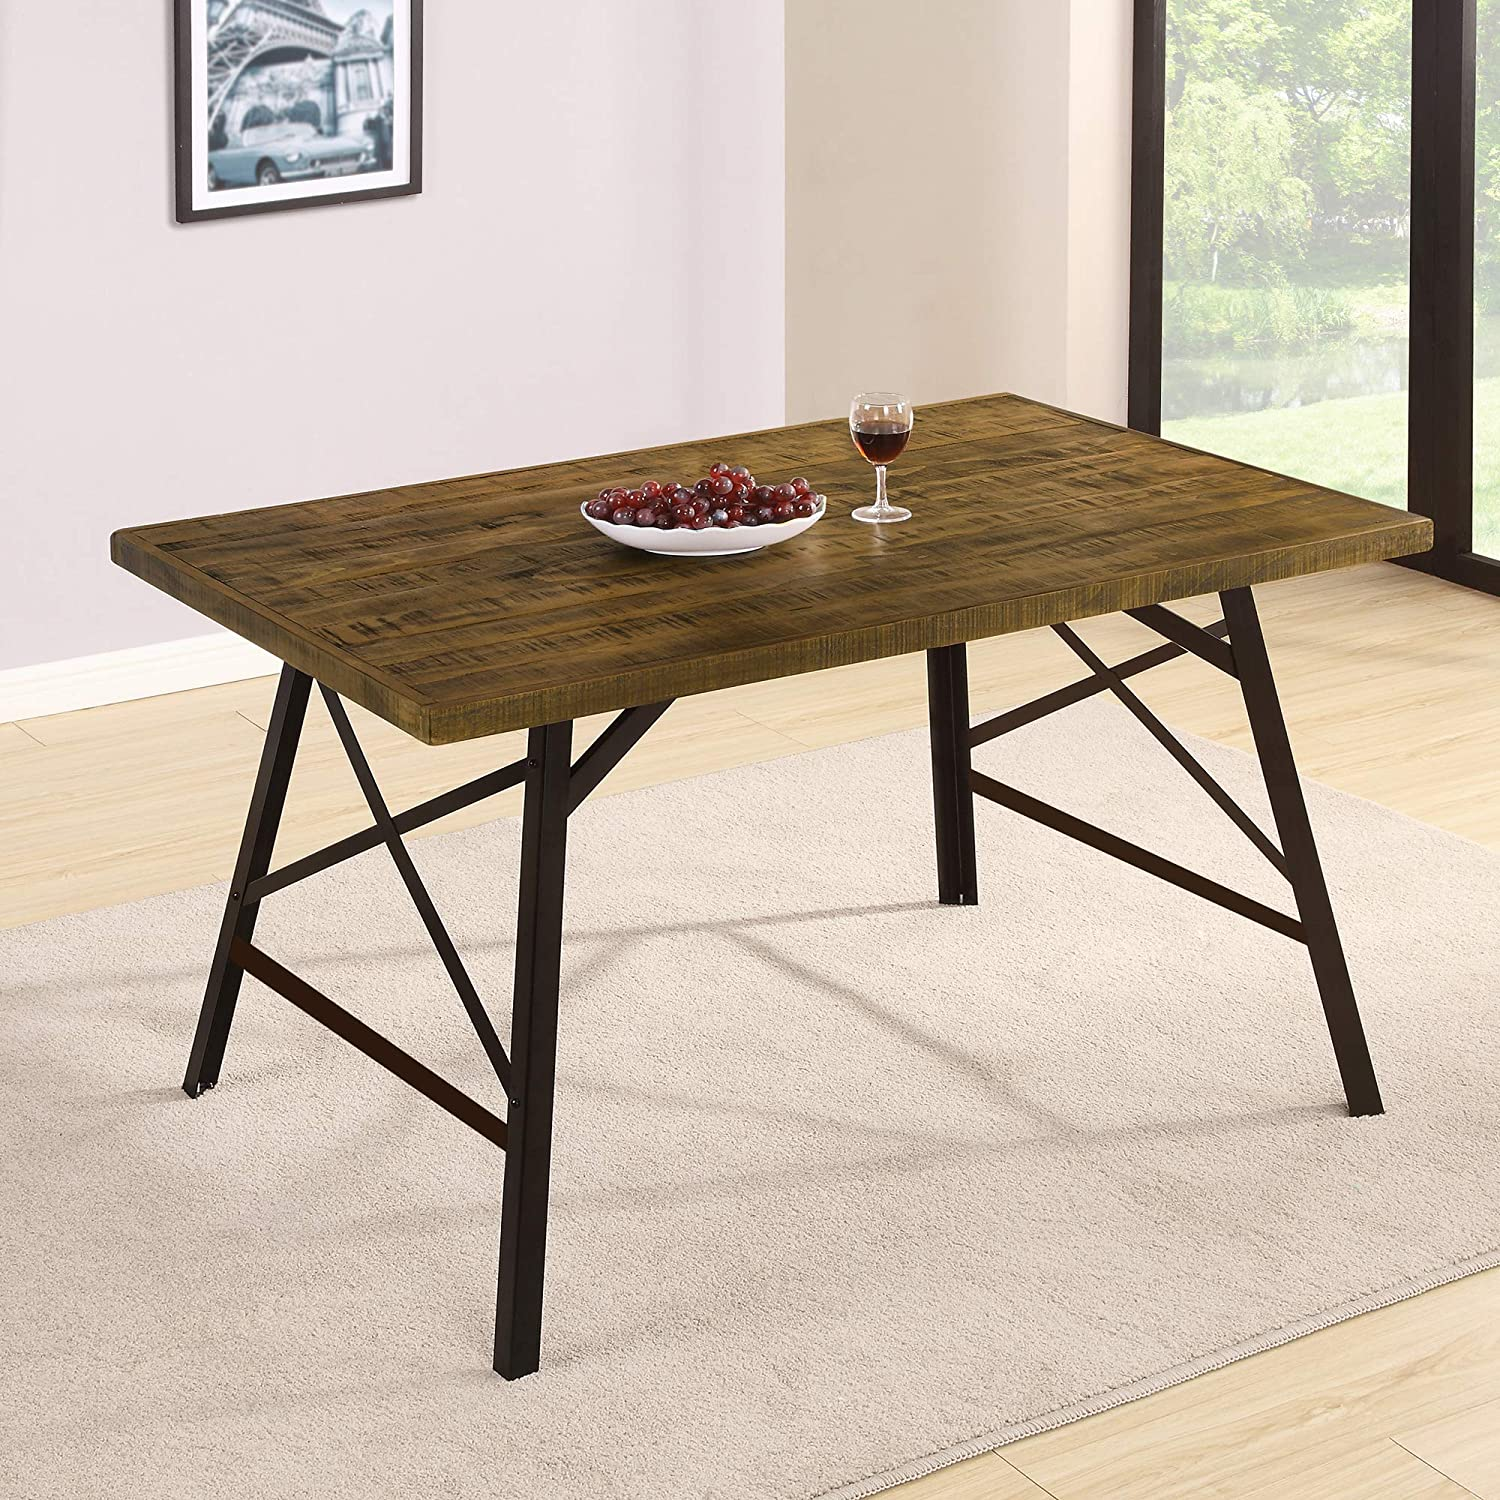 Olee Sleep VC30TB01M Wood and Metal Tall Dining Table, Brown